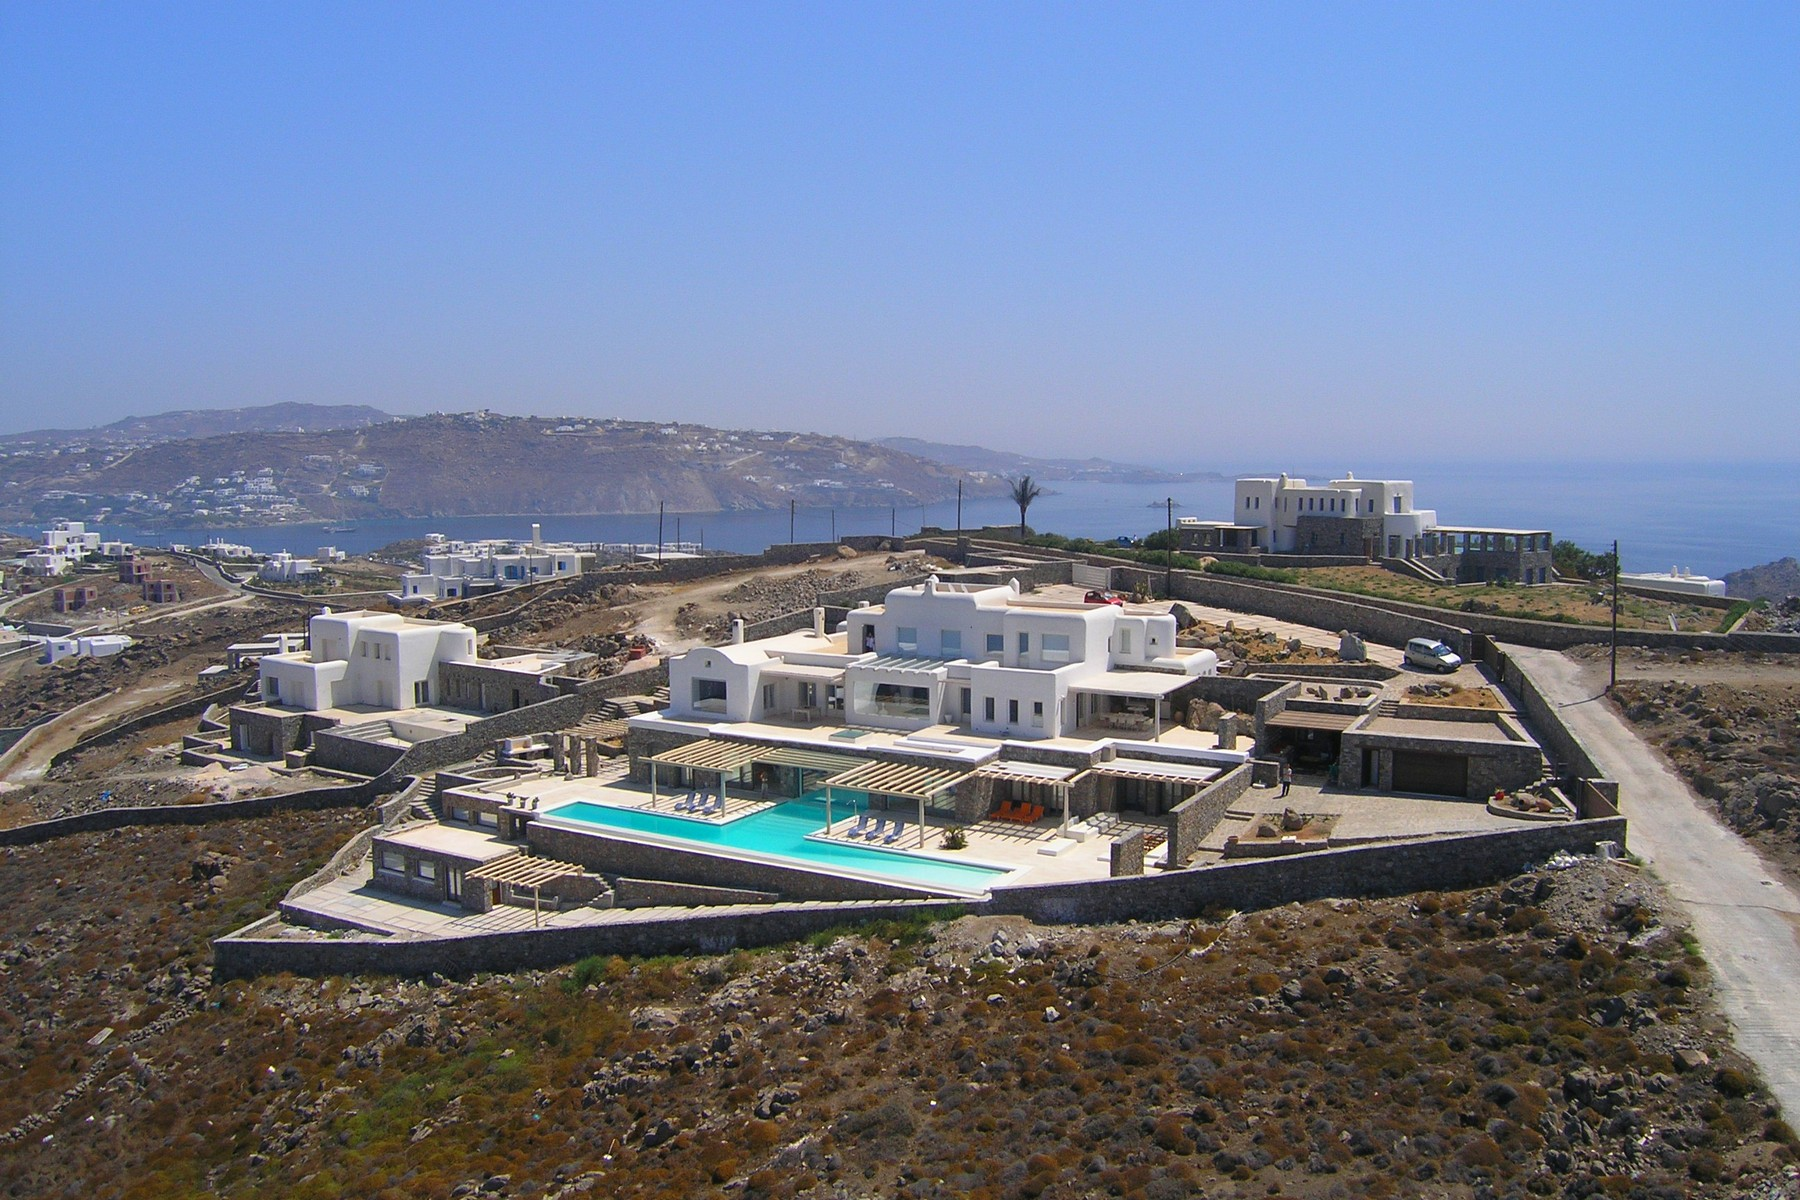 Single Family Home for Sale at Villa Aphrodisia Mykonos, Southern Aegean 84600 Greece